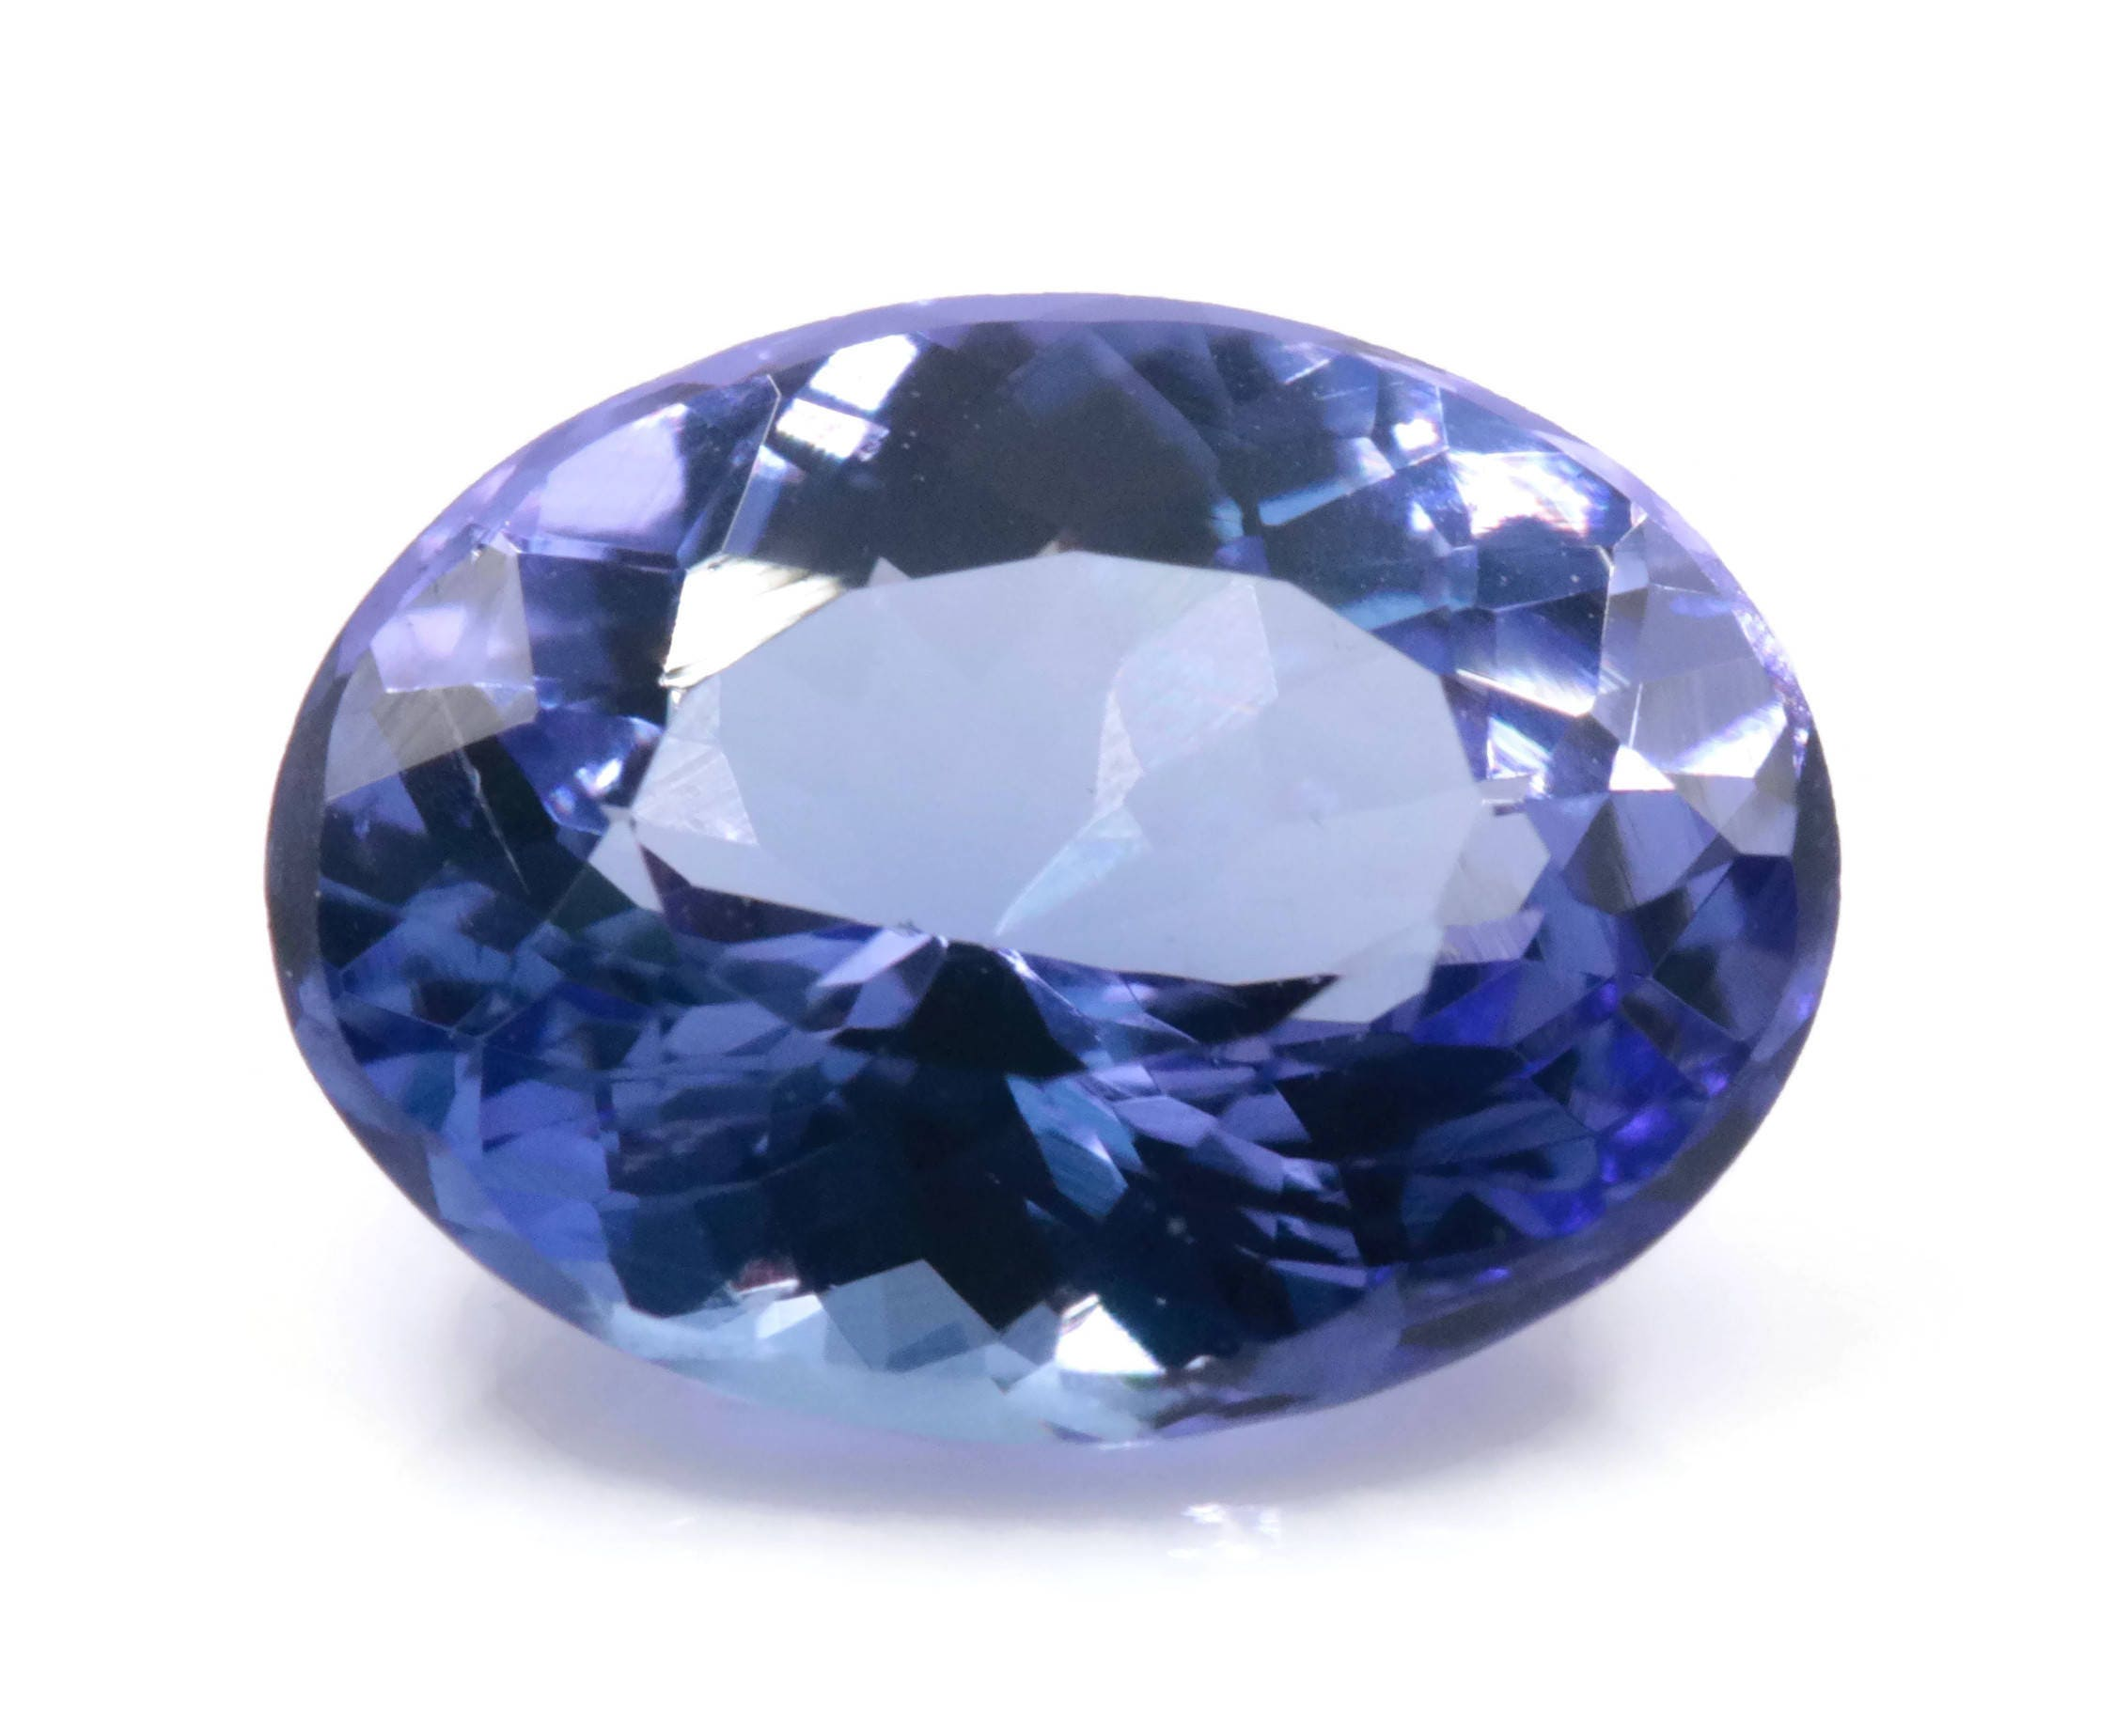 greenish heated pear vs blue round gemstones r tanzanite natural ct dark shape tanzania purple loose